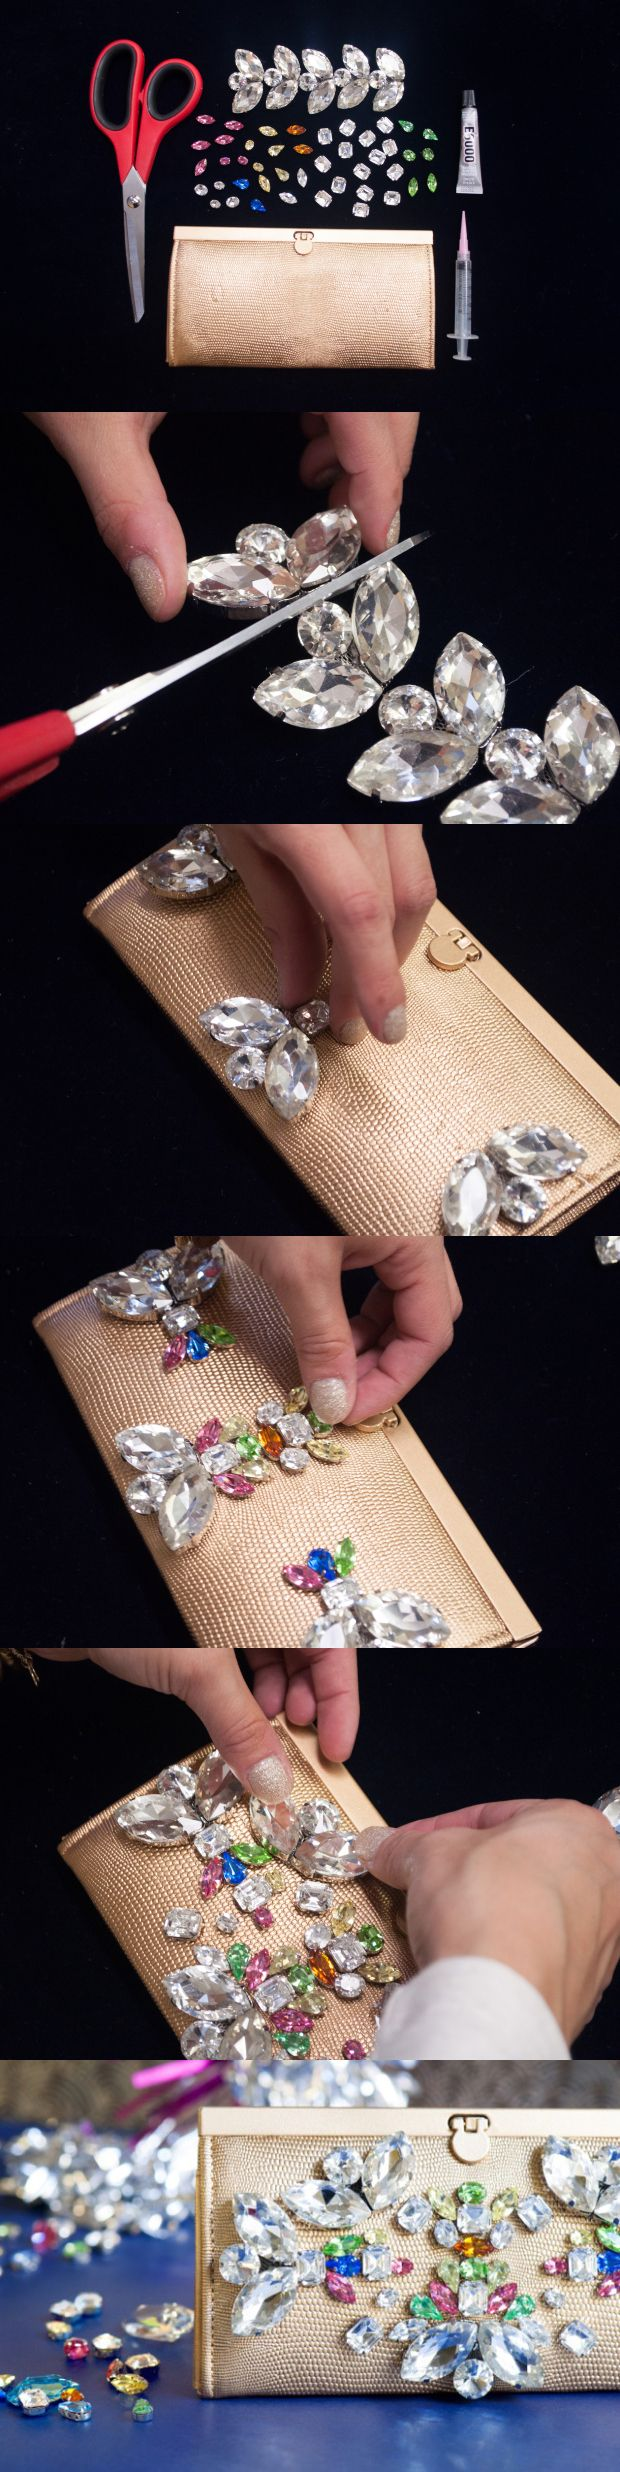 DIY: BEJEWELED HOLIDAY CLUTCH - Amazingly Easy to Make DIY Fashion Projects